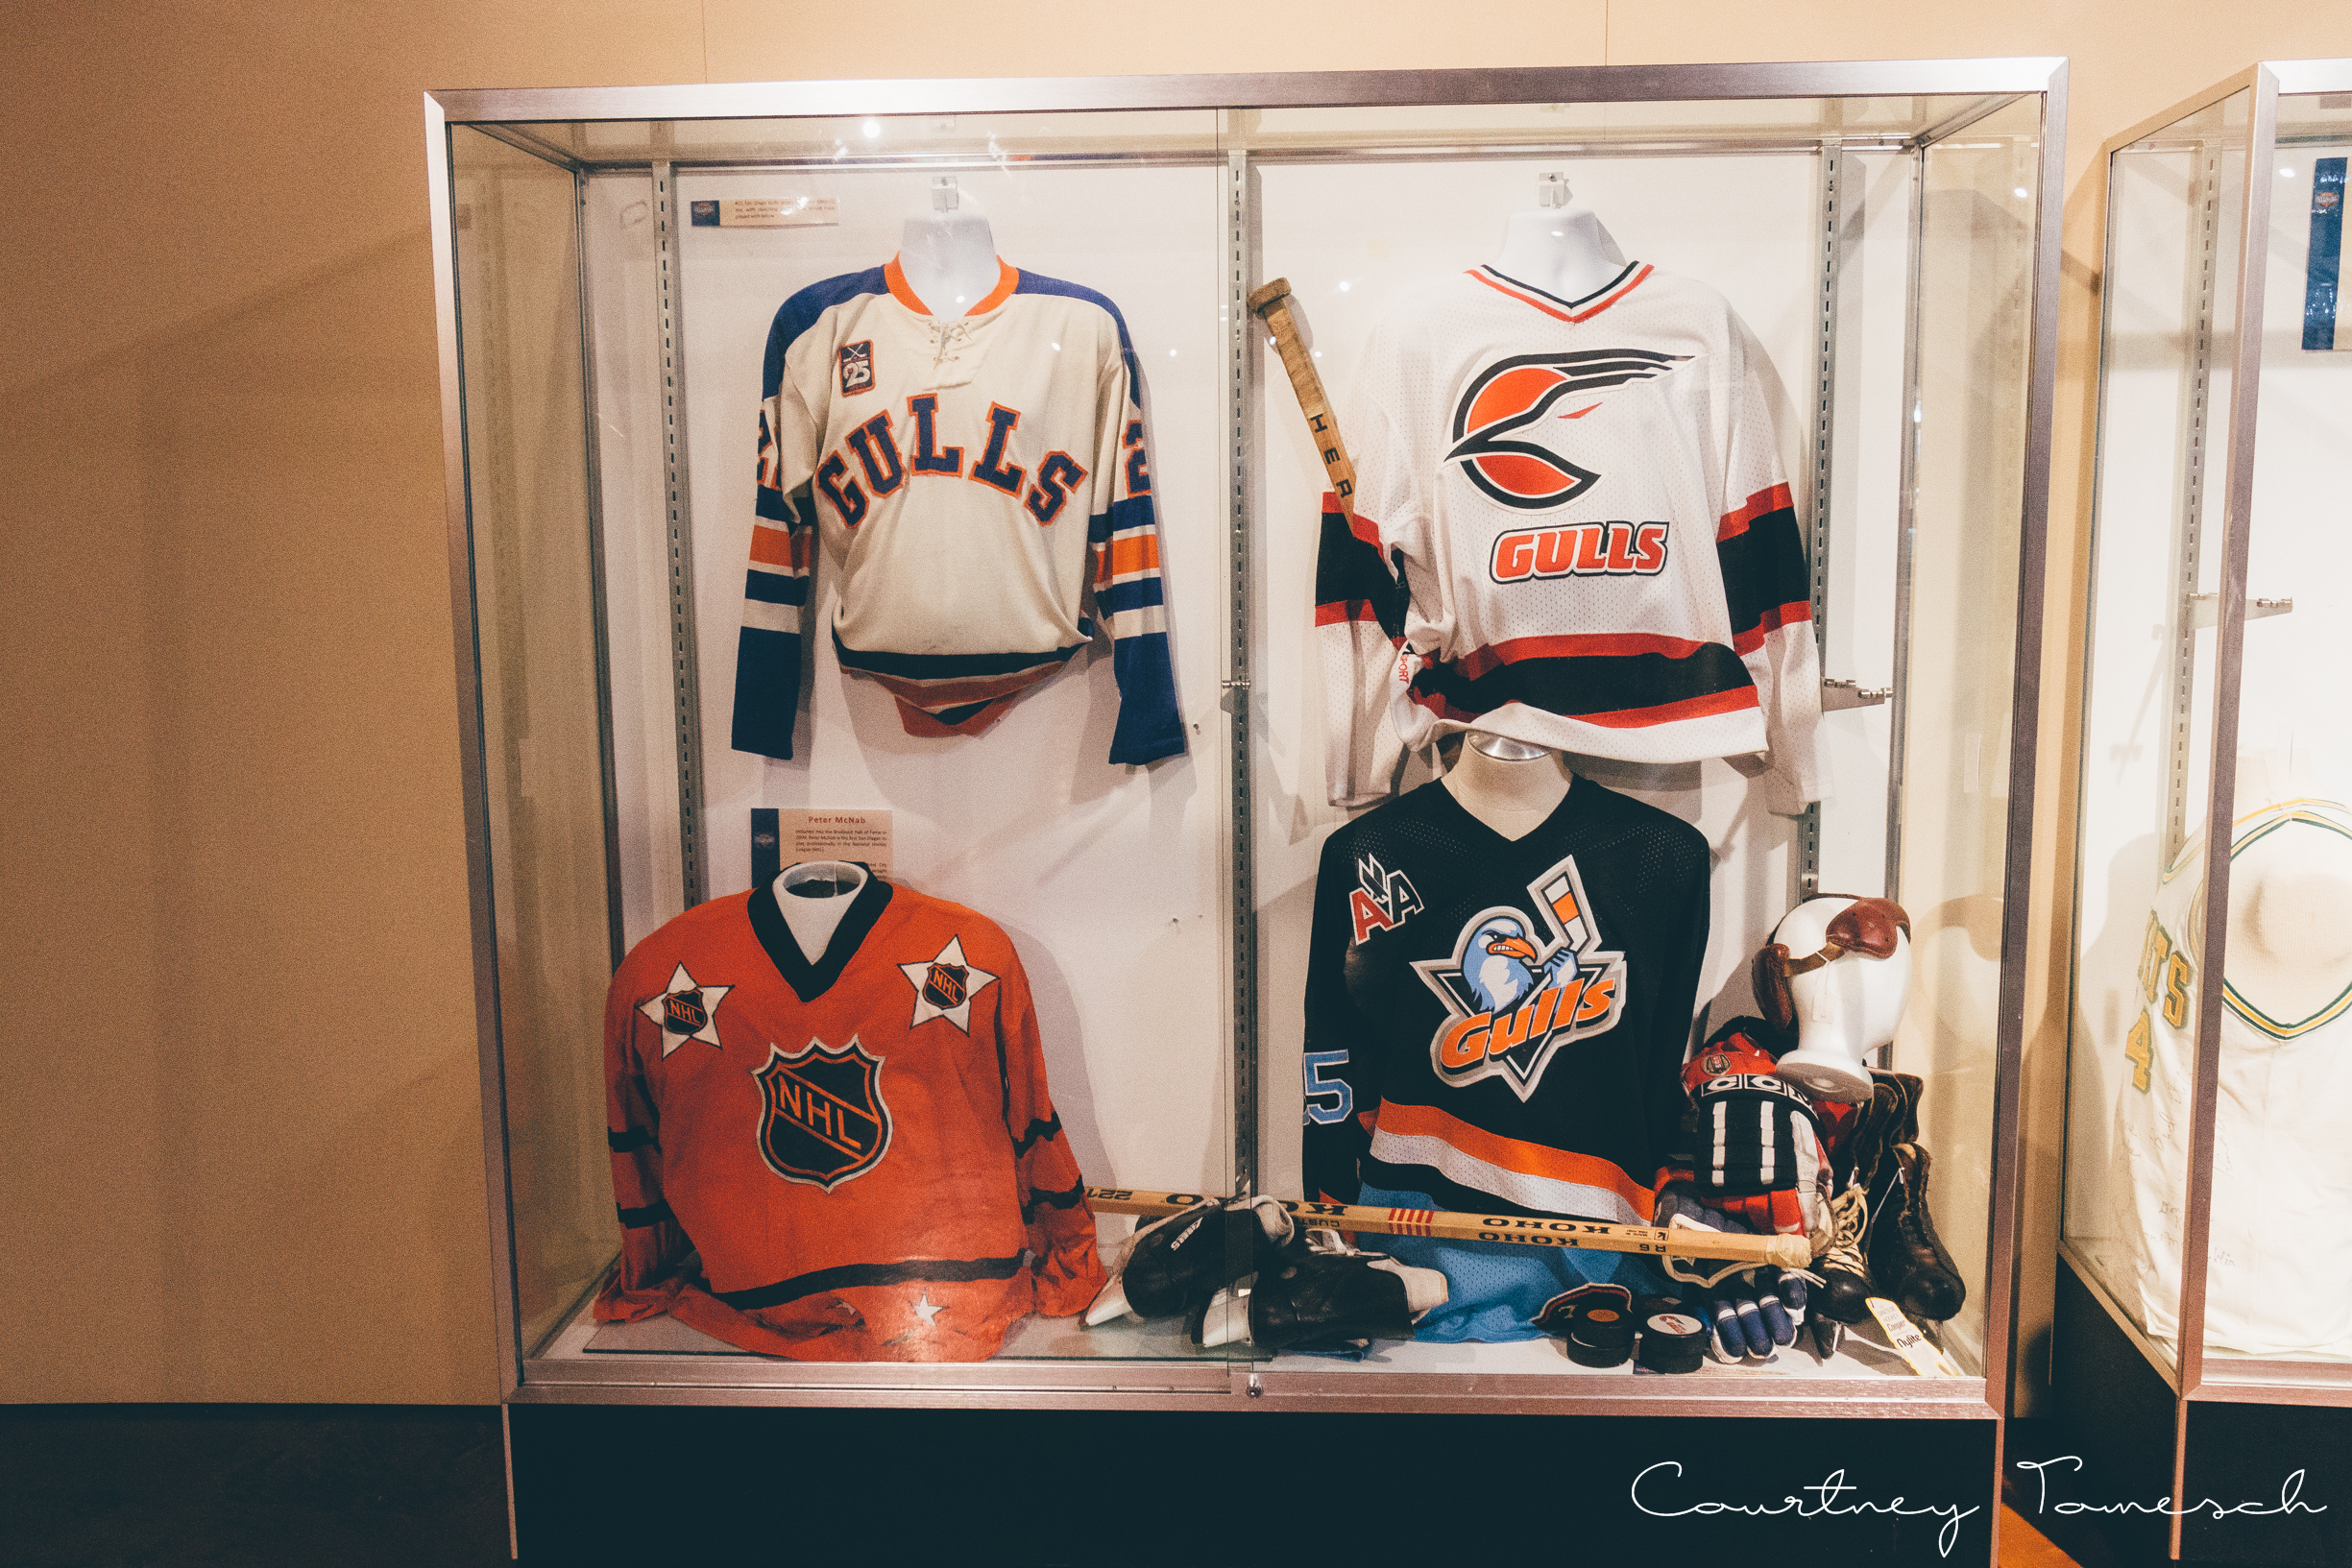 Old Gulls jerseys - New Gulls jerseys